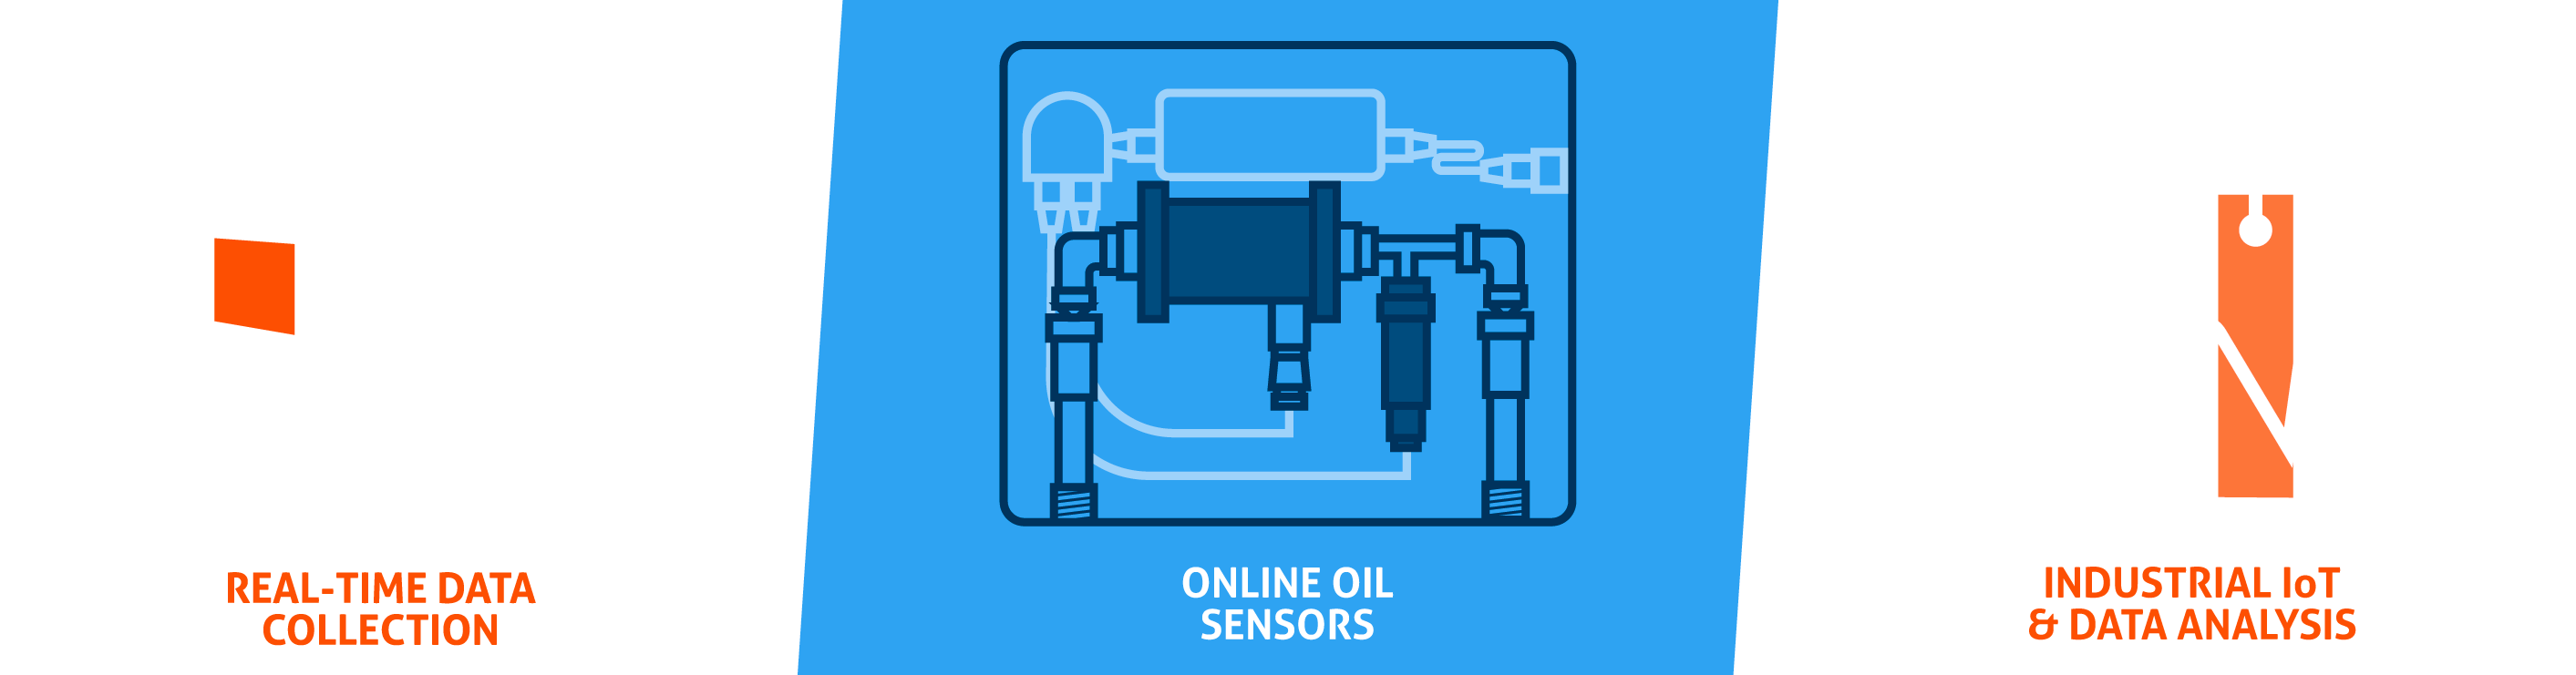 Shows how Poseidon Sensors collect and analyze data from industrial equipment